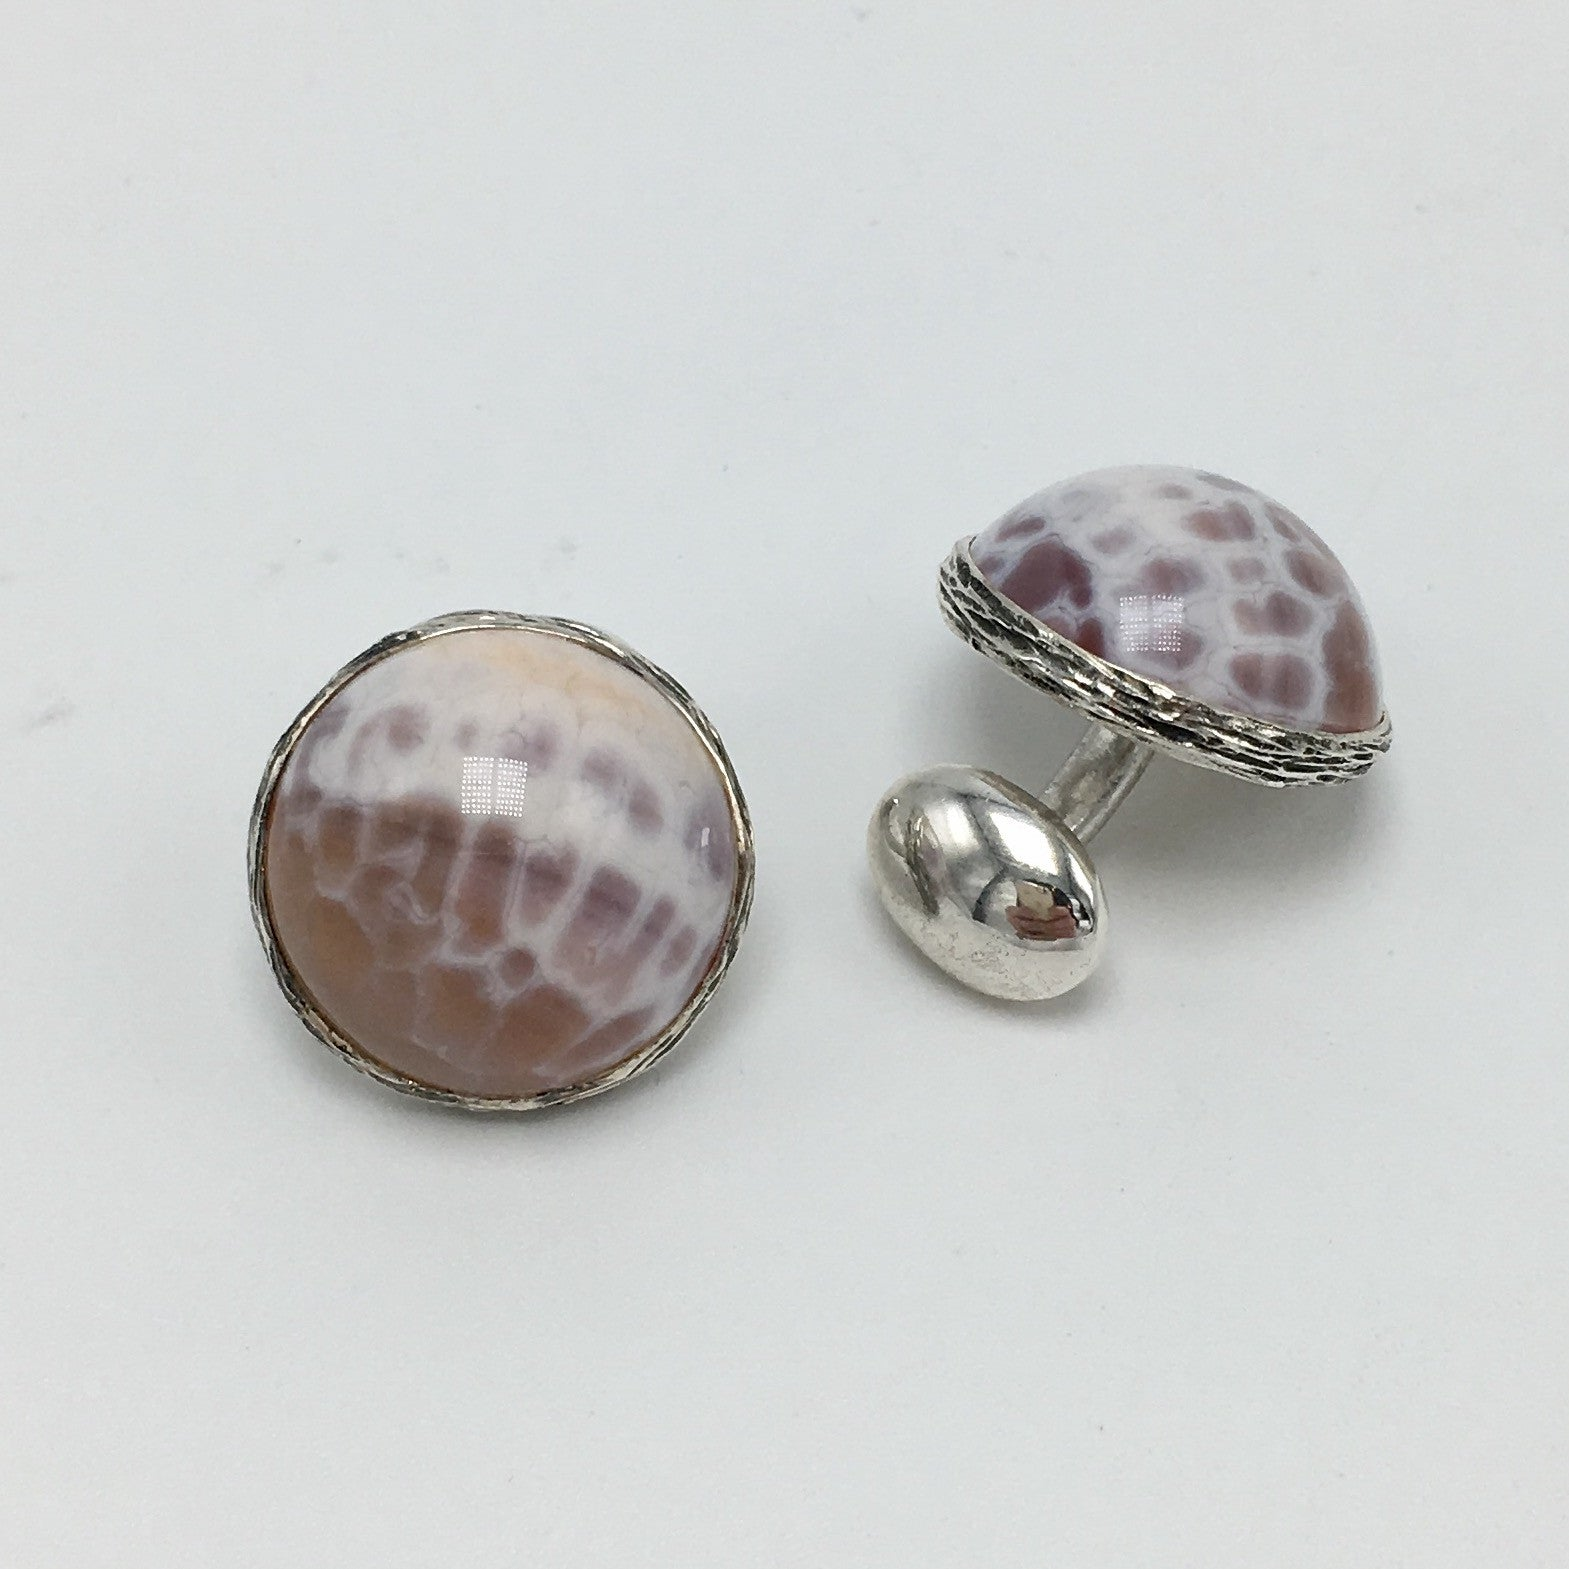 Snakeskin Agate Cufflinks in Sterling Silver - USE CODE HOORAY50 FOR AN EXTRA 50% OFF